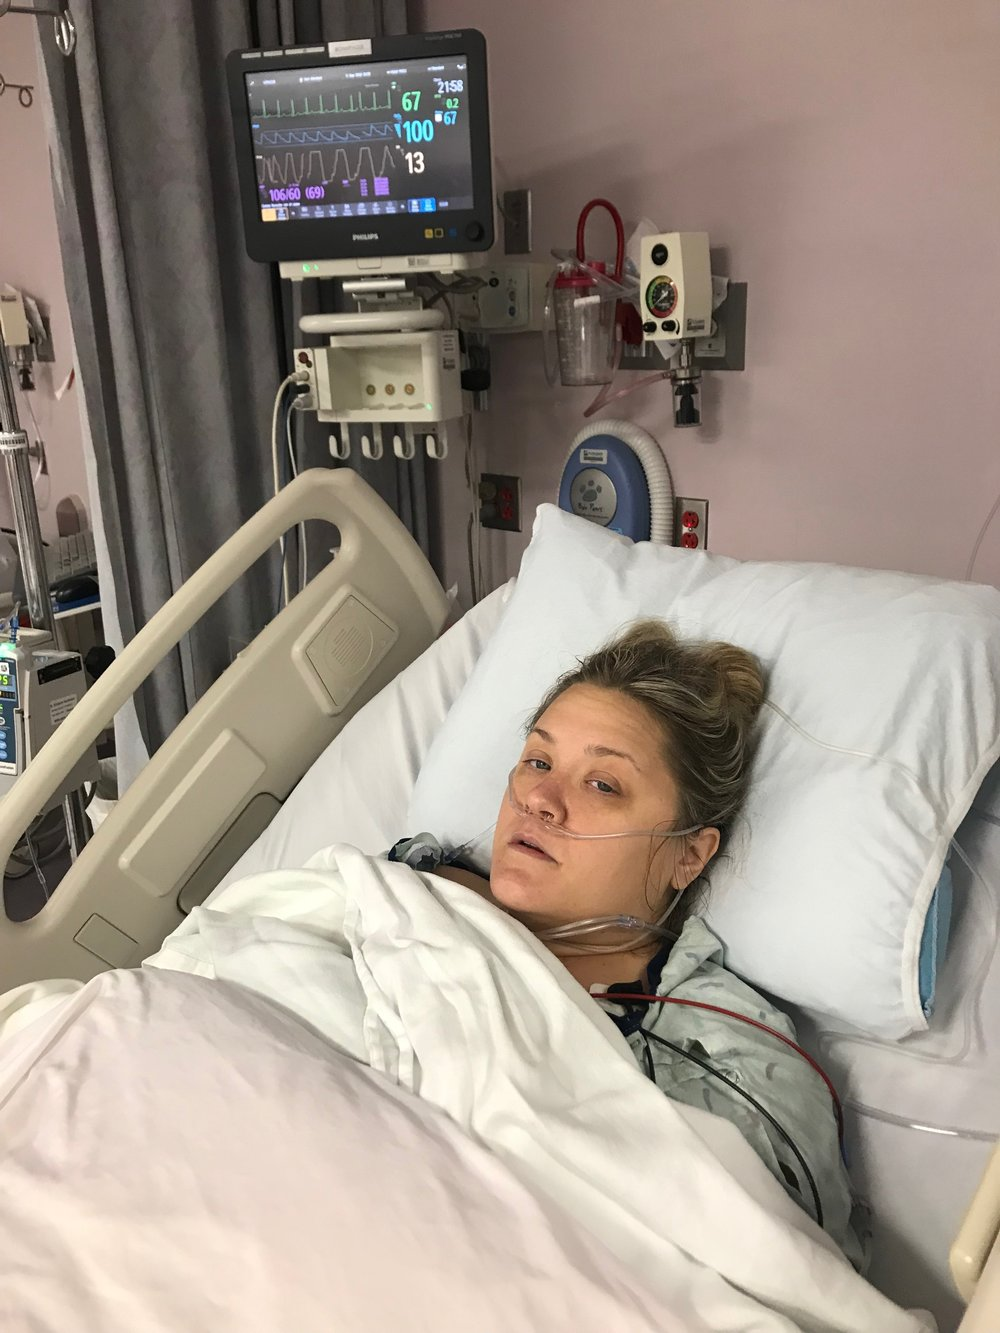 This is me moments after rousing in the post-op recovery room. I guess I was demanding that I wanted a photo. I still wasn't breathing on my own properly and Jordan said my lips kept turning blue. I was only in recovery for about 40 minutes before I went back to my room for the night.